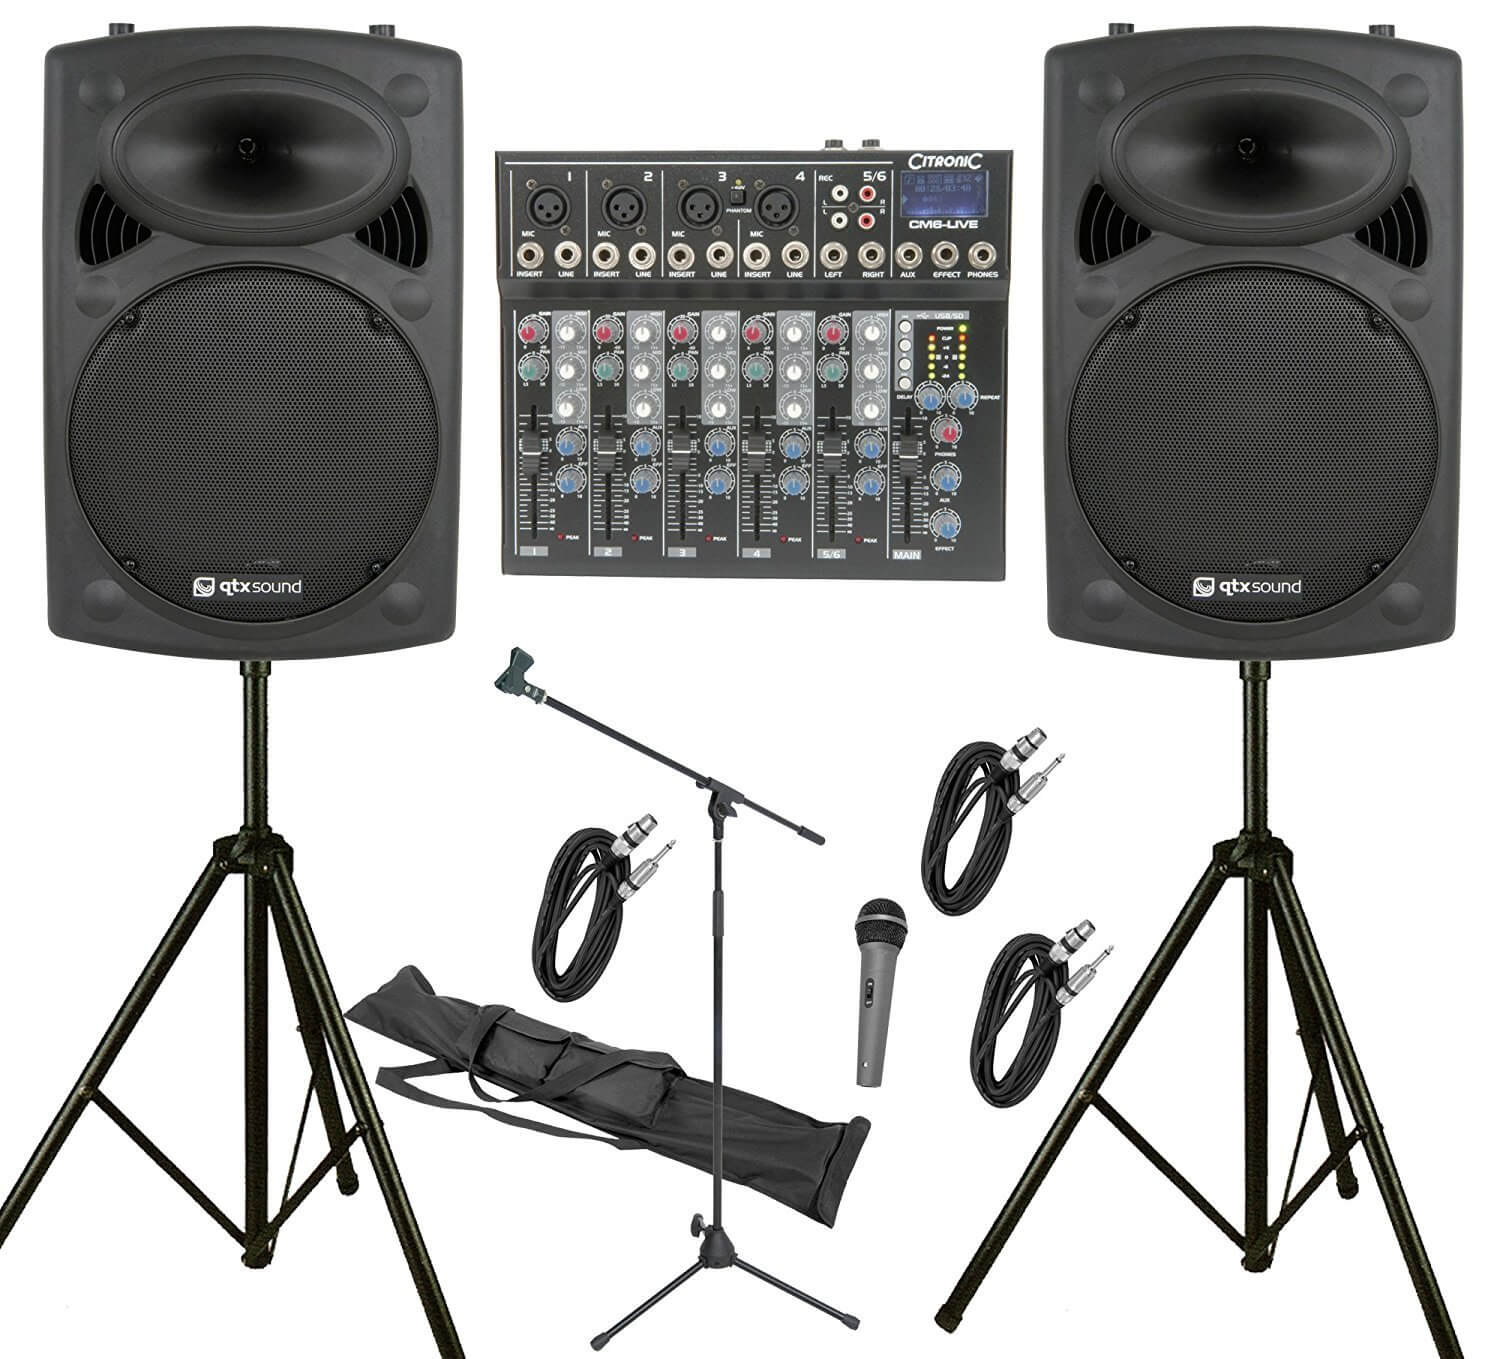 "QTX 800W, 6 Channel PA System with 12"" Active Speakers"